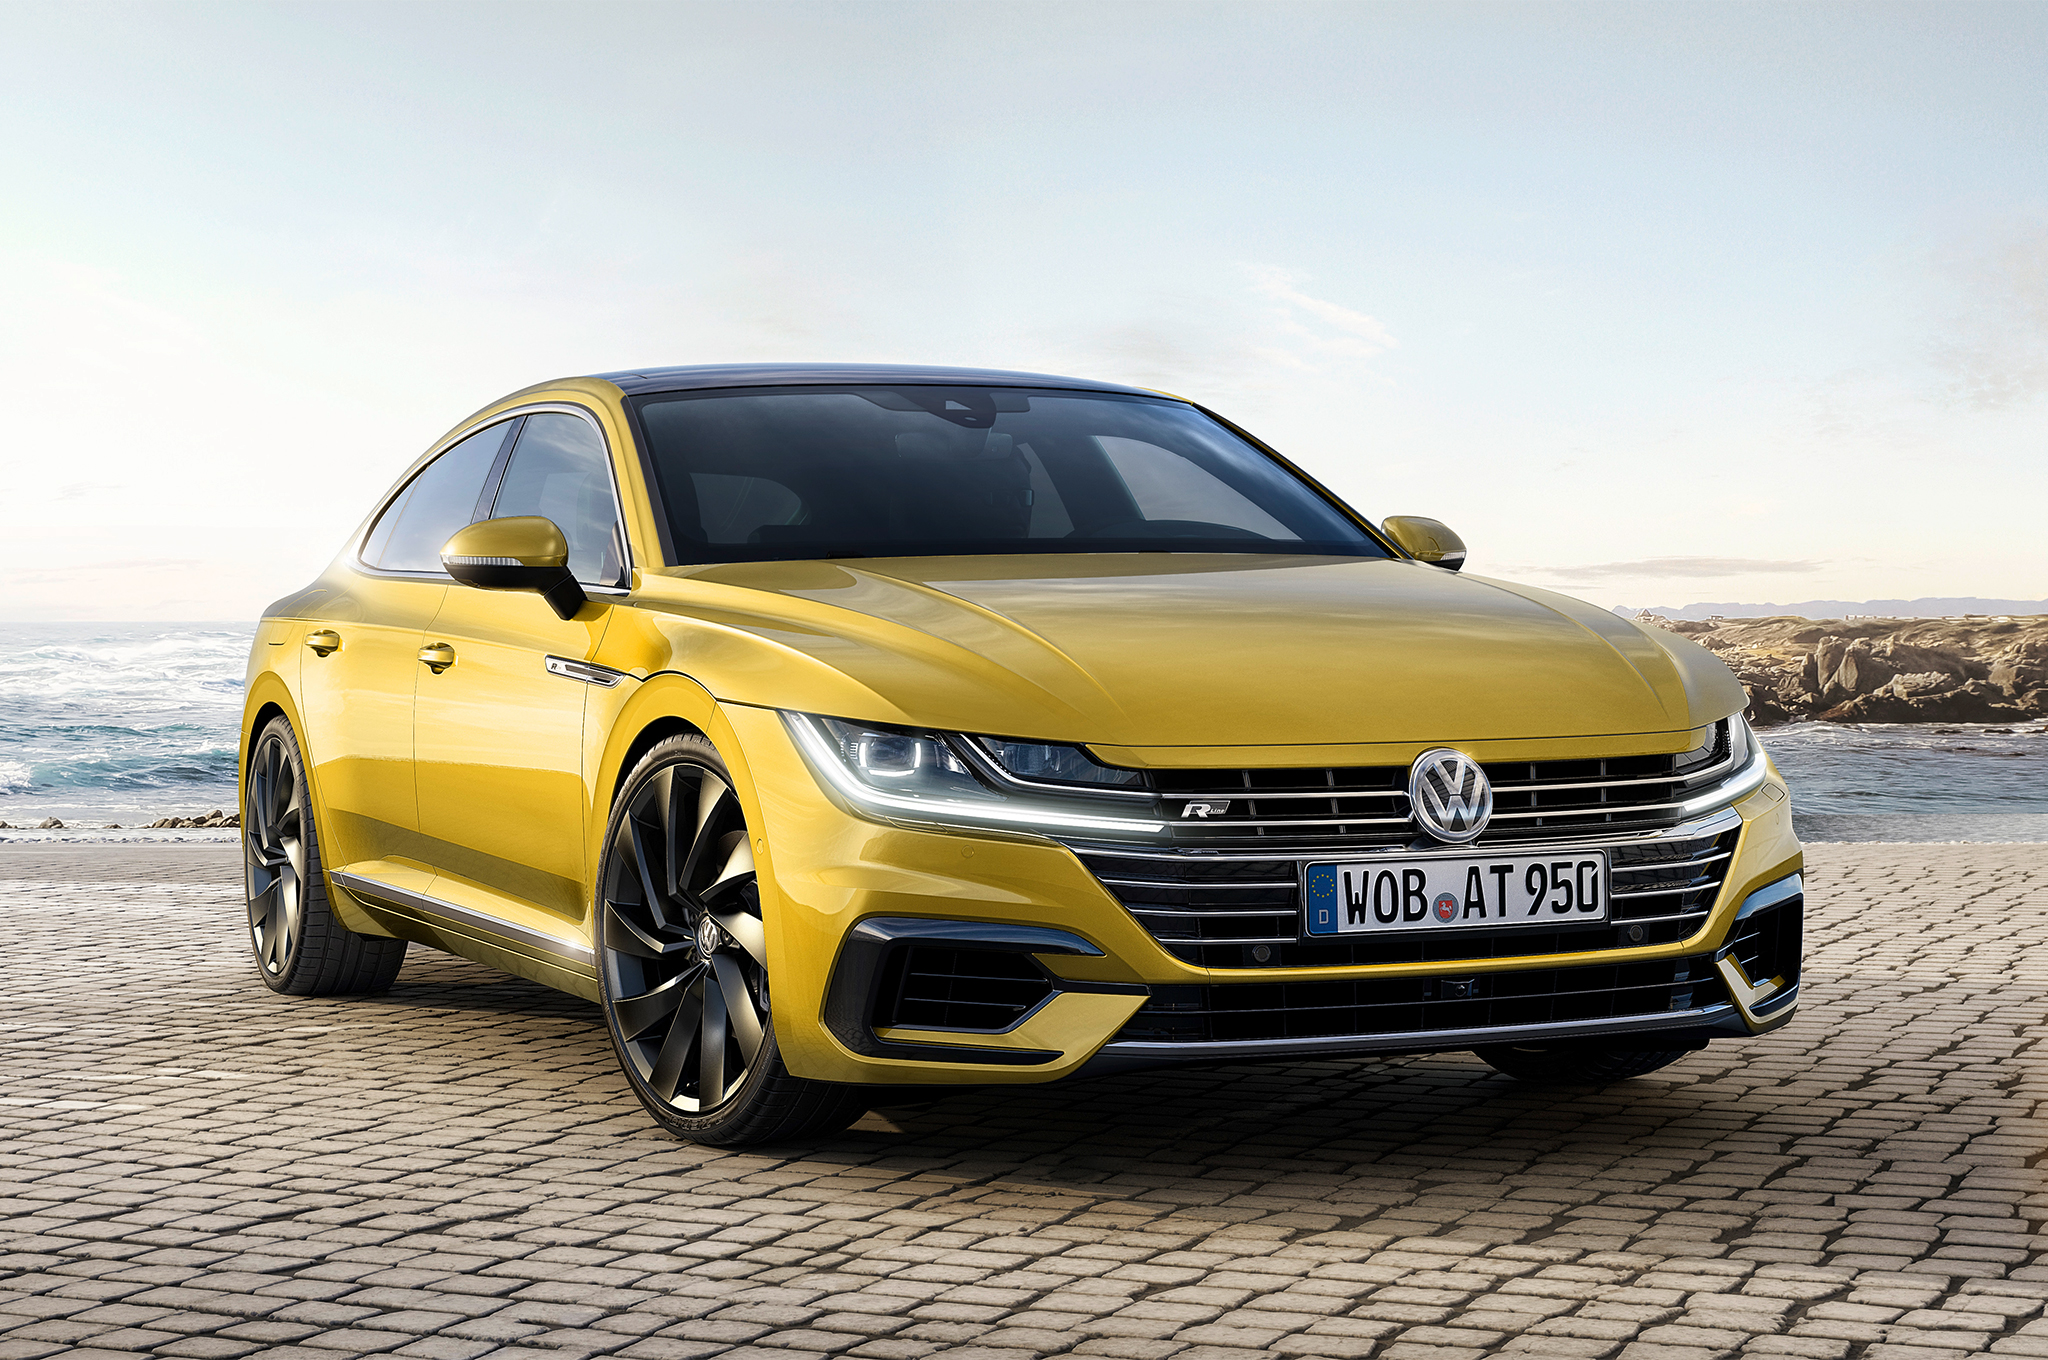 VOLKSWAGEN ARTEON MAKES WORLD DEBUT AT THE GENEVA AUTO SHOW